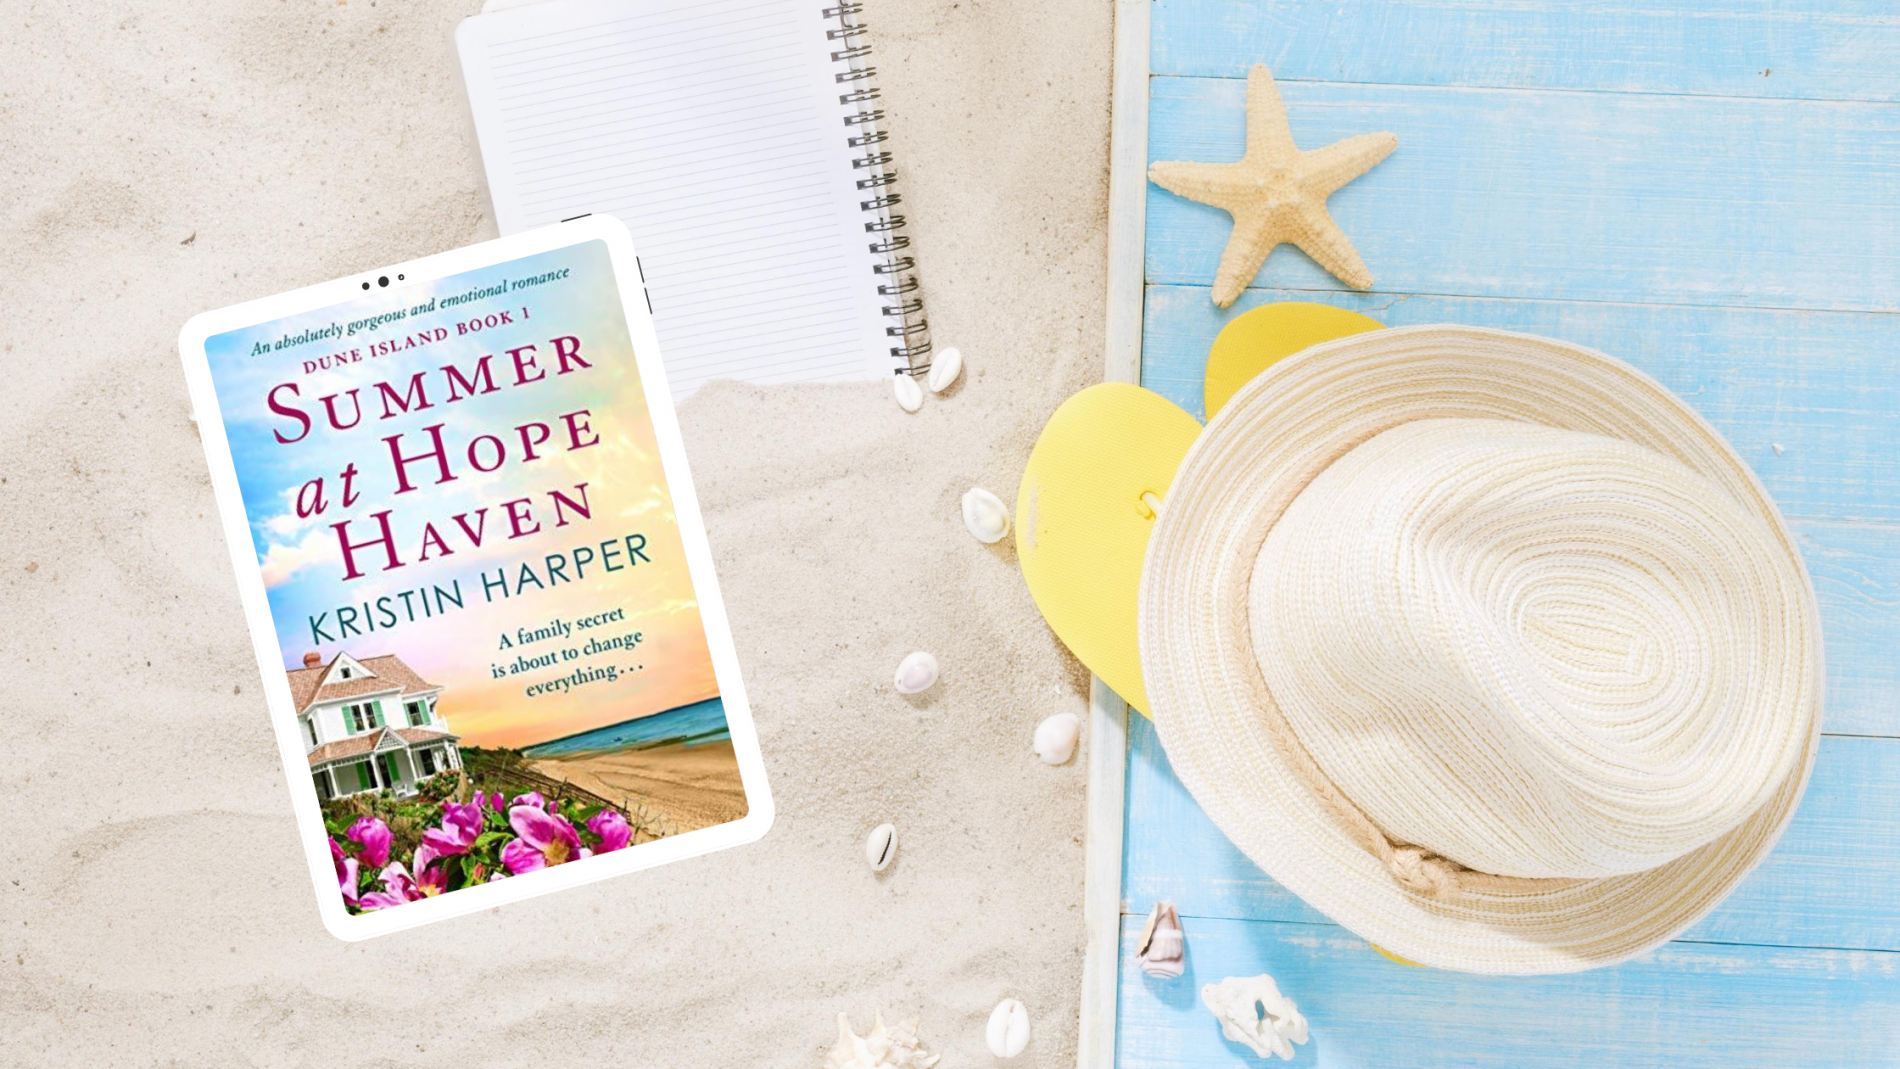 Summer at Hope Haven book cover in the sand